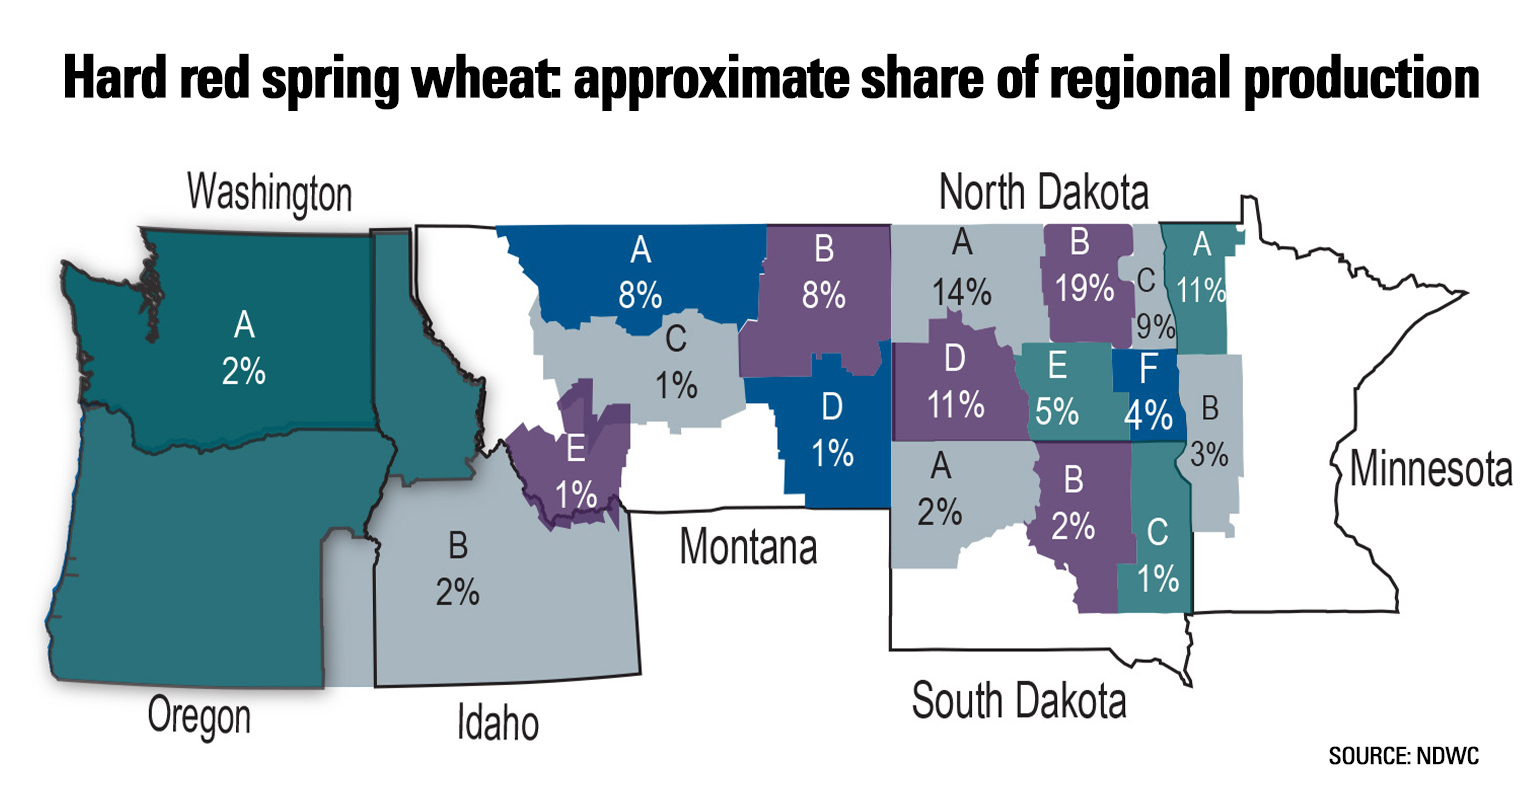 Map showing approximate share of regional production for hard red spring wheat